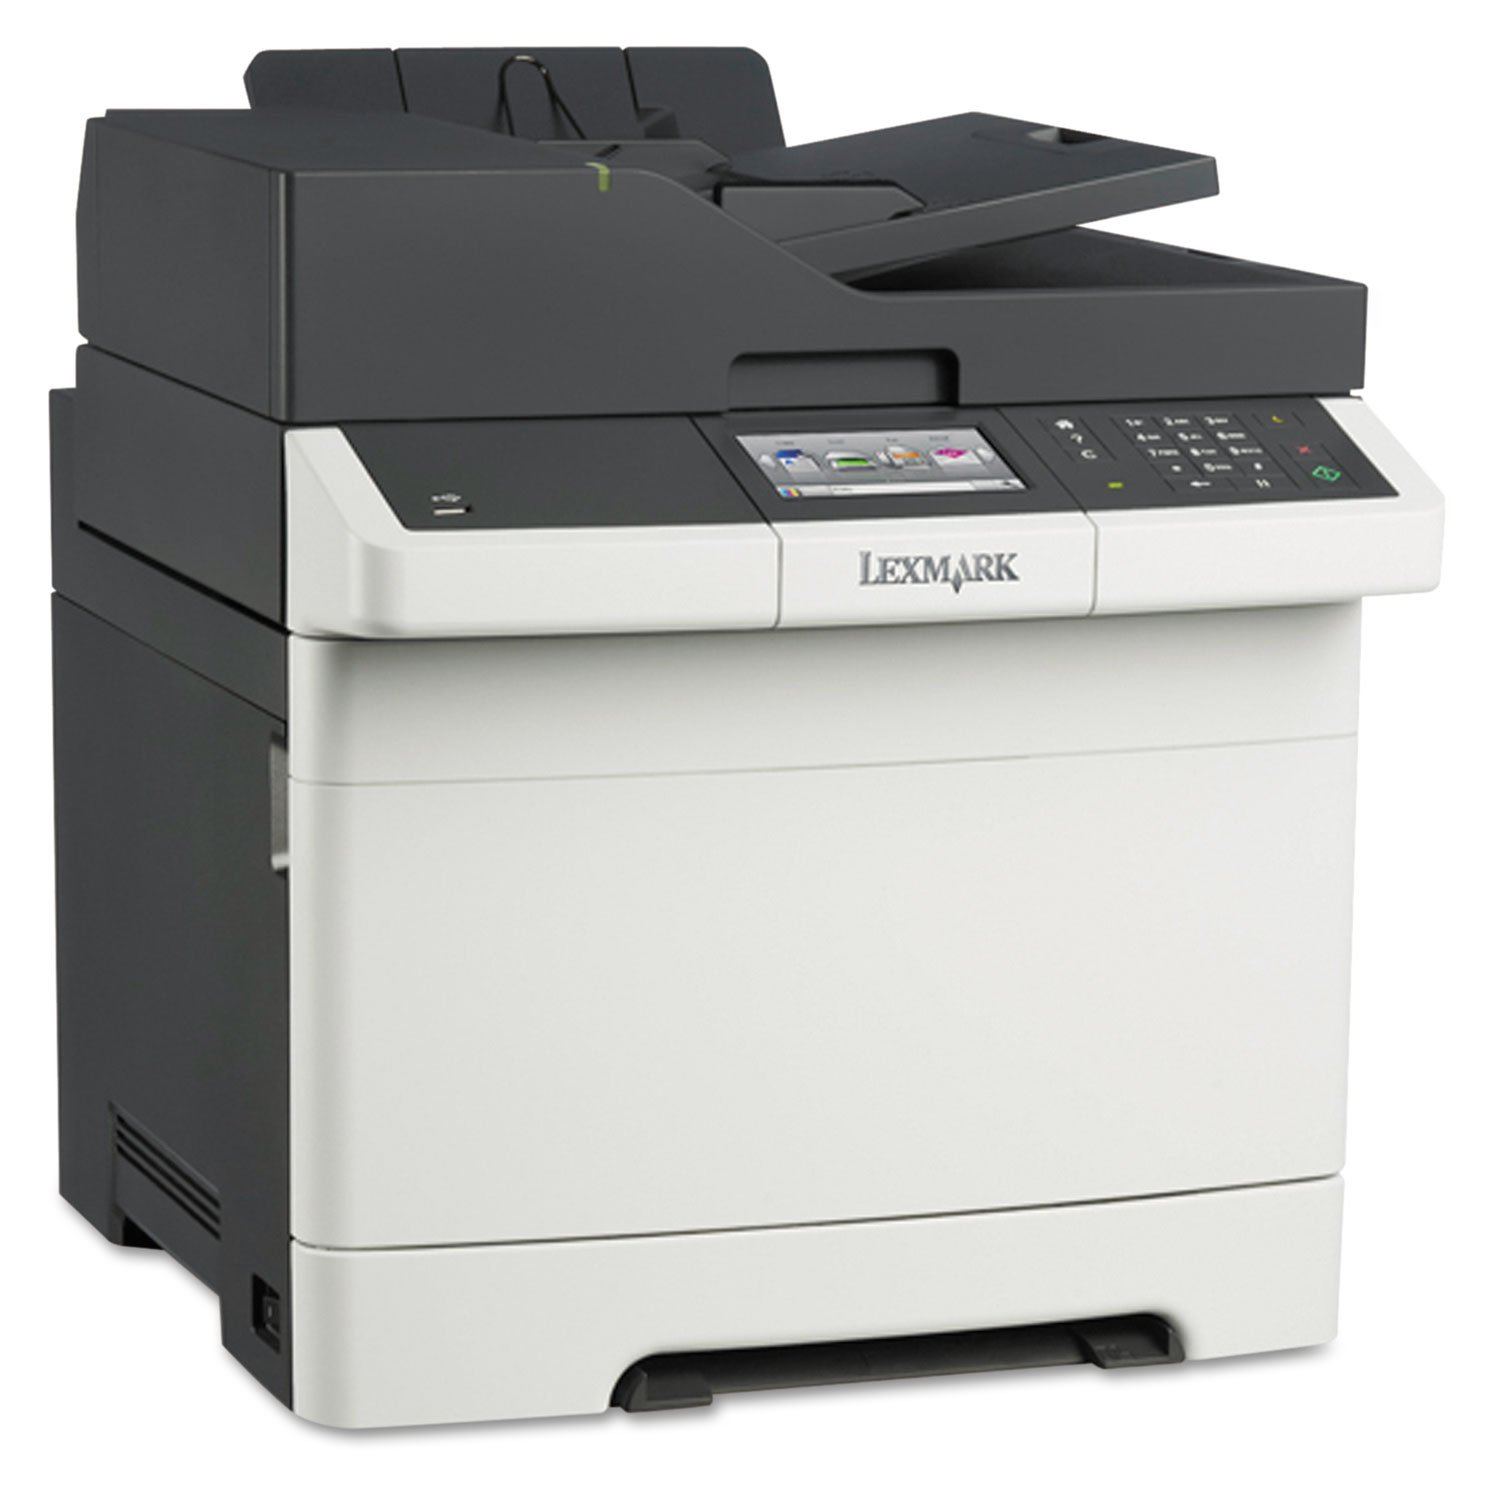 Amazon.com: Lexmark CX410e Color All-In One Laser Printer with Scan, Copy,  Network Ready and Professional Features: Electronics